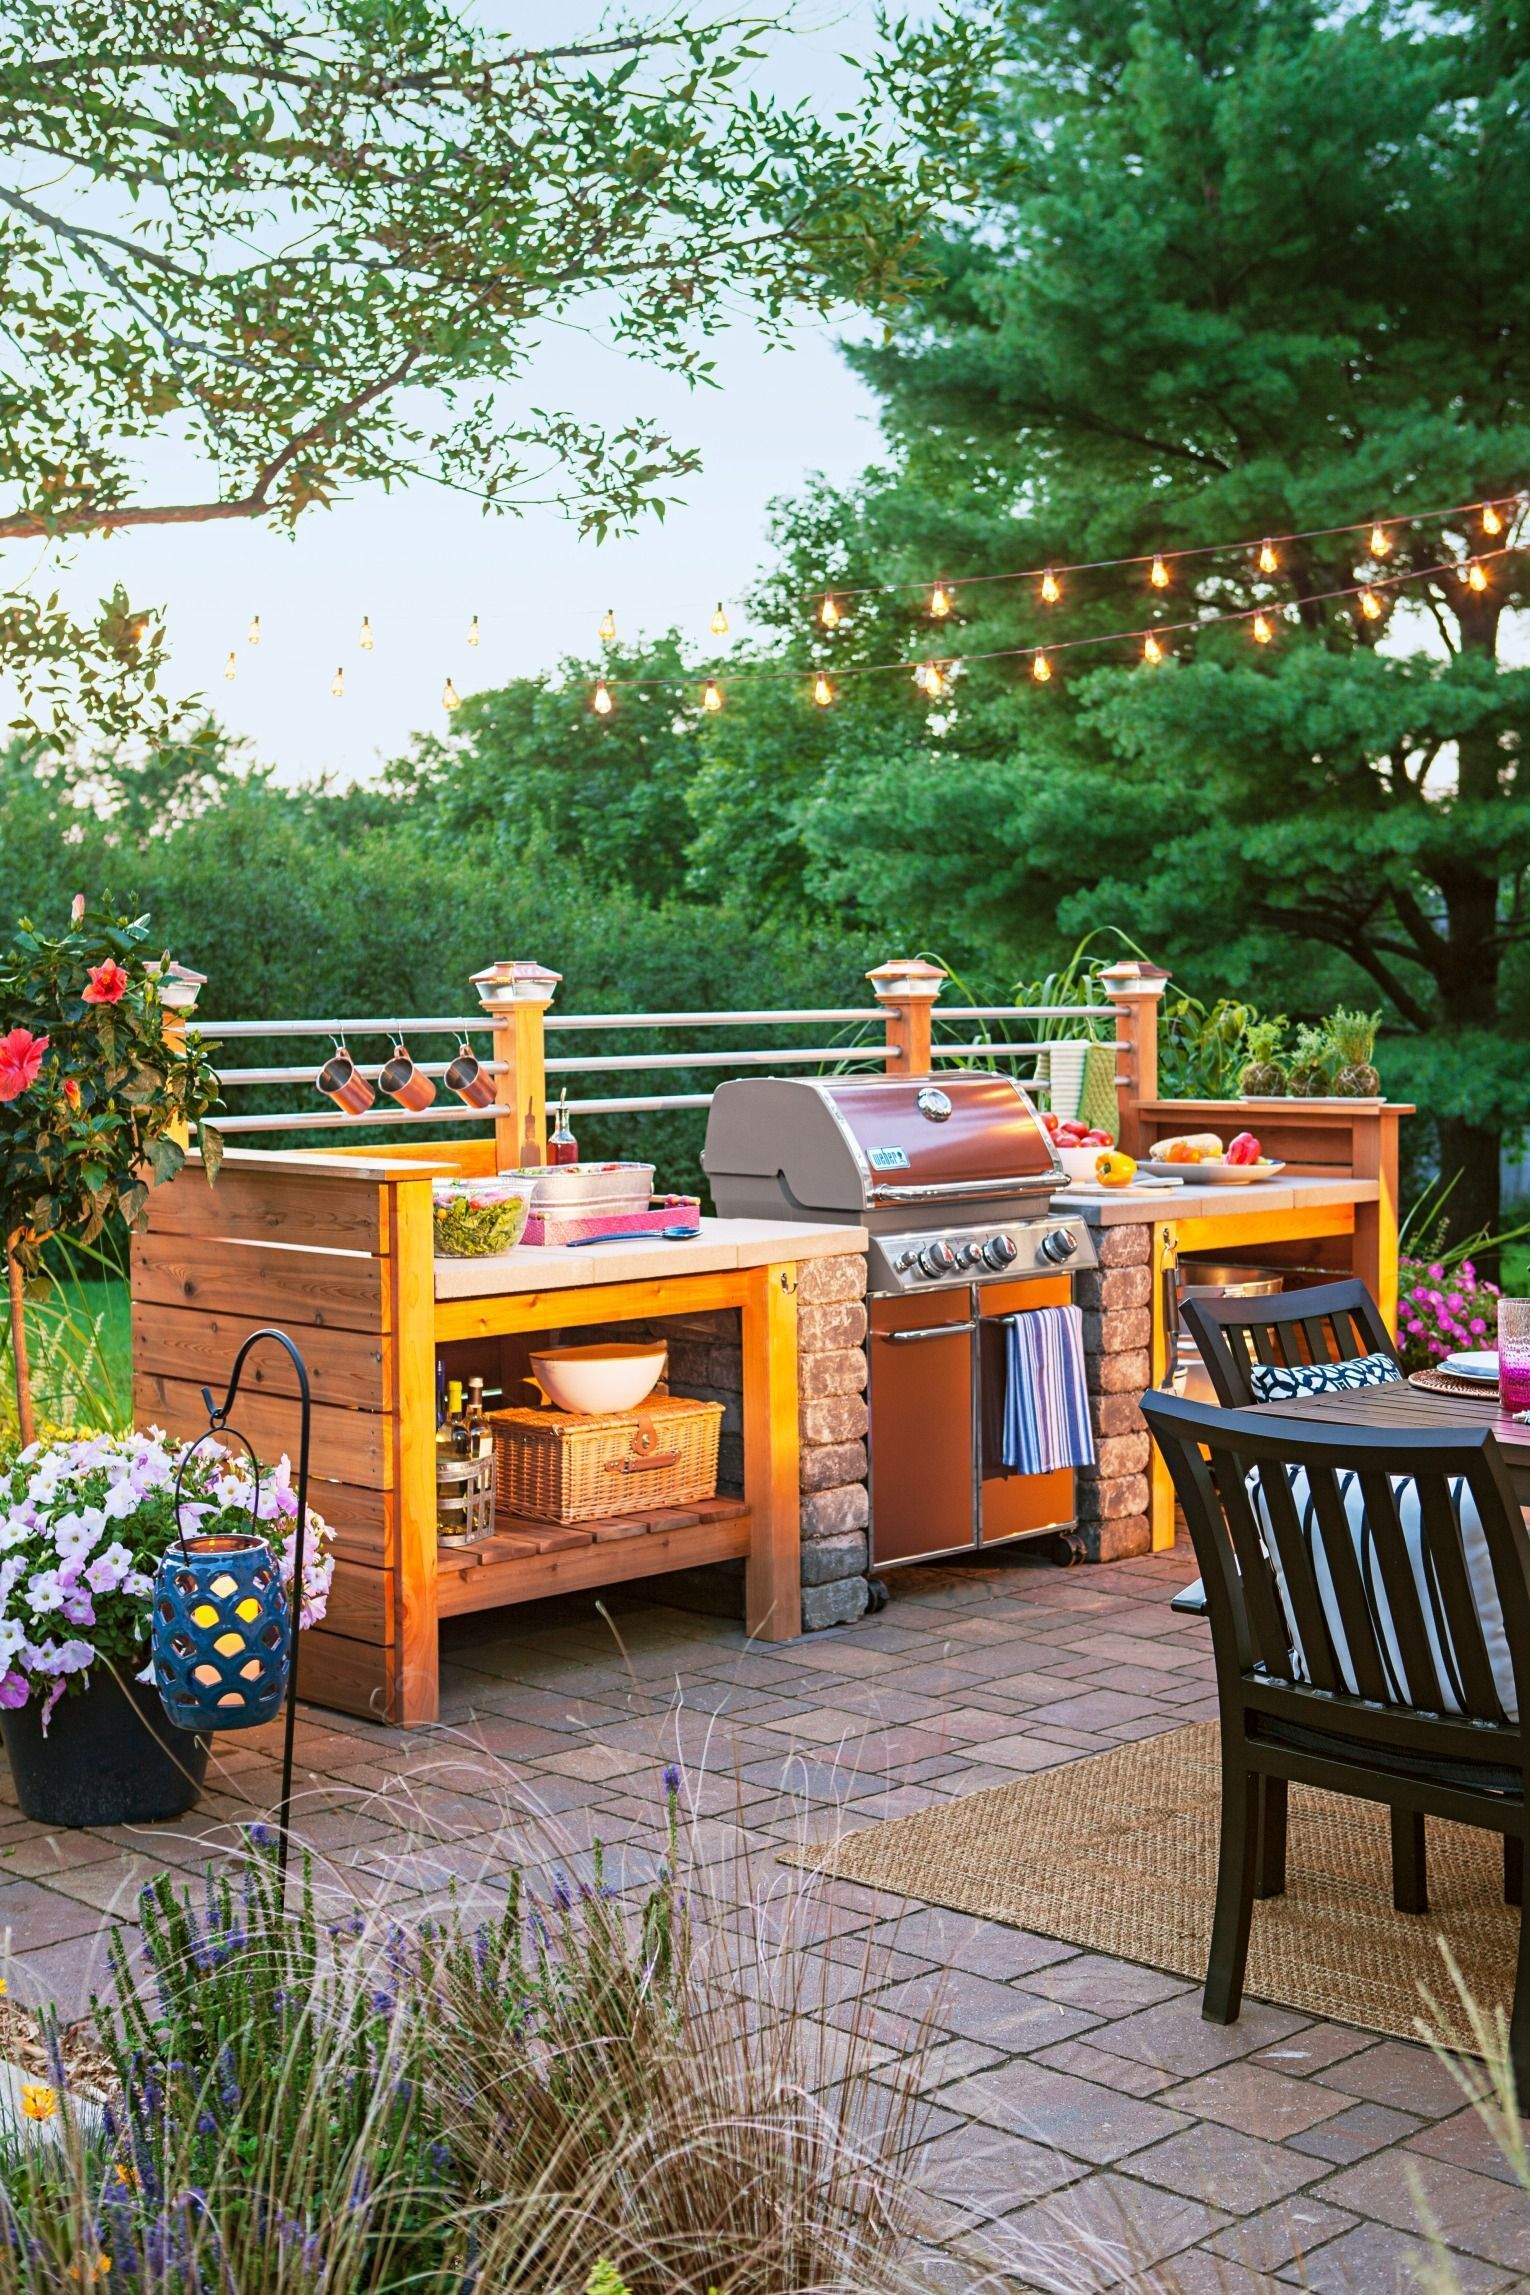 Get outdoor kitchen ideas from thousands of outdoor kitchen pictures